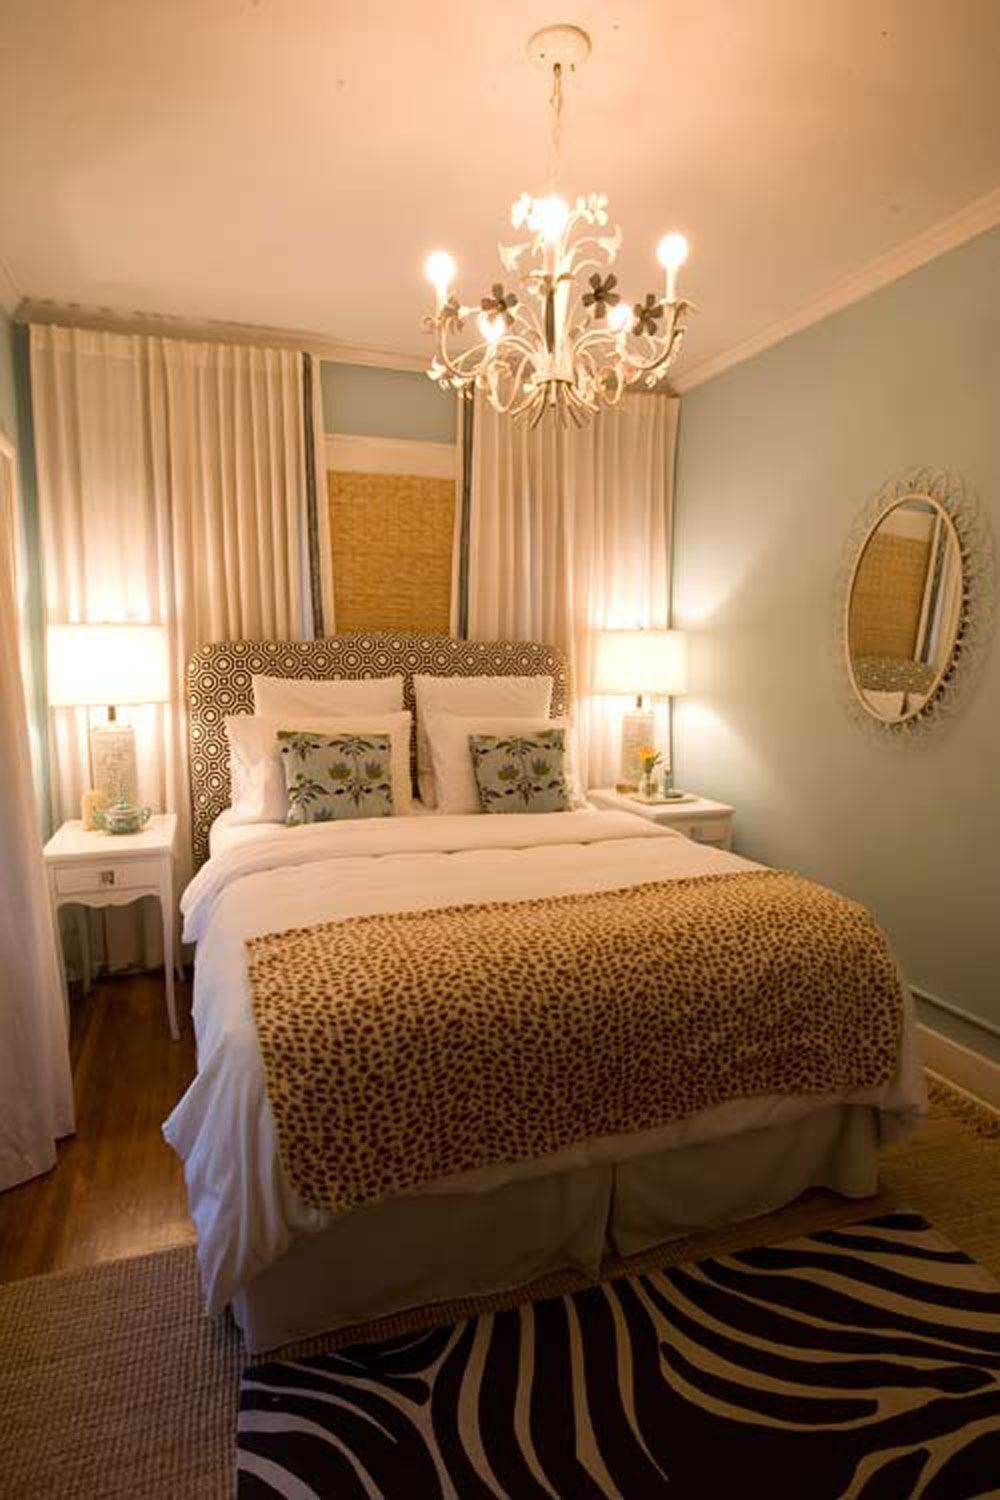 design tips for decorating a small bedroom on a budget - Small Guest Bedroom Decorating Ideas